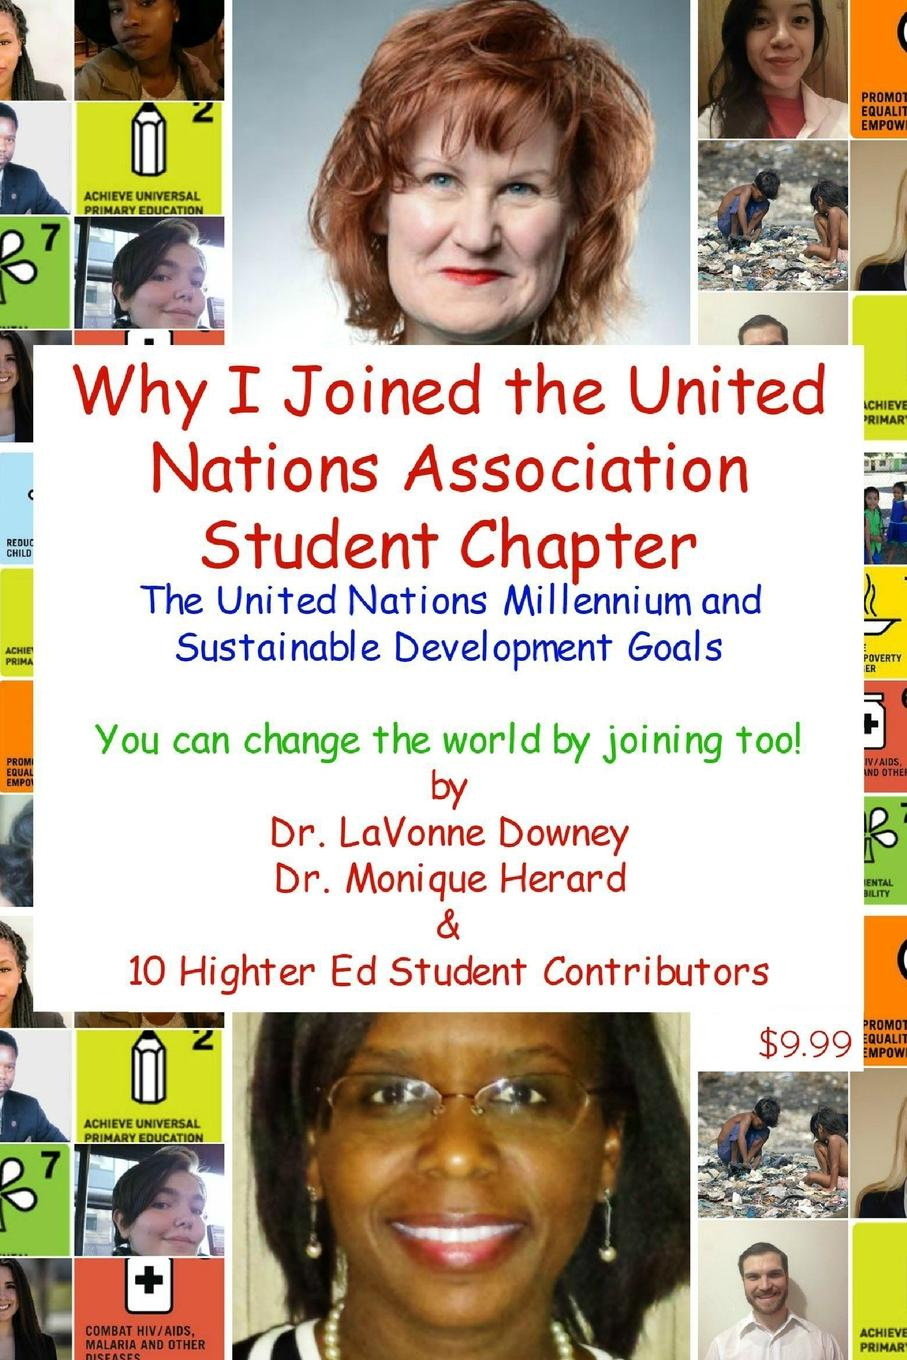 The United Nations Millennium and Sustainable Development Goals is Why I Joined the United Nations Association Student Chapter You can change the world by joining too. This book is a compilation of the United Nations Association...